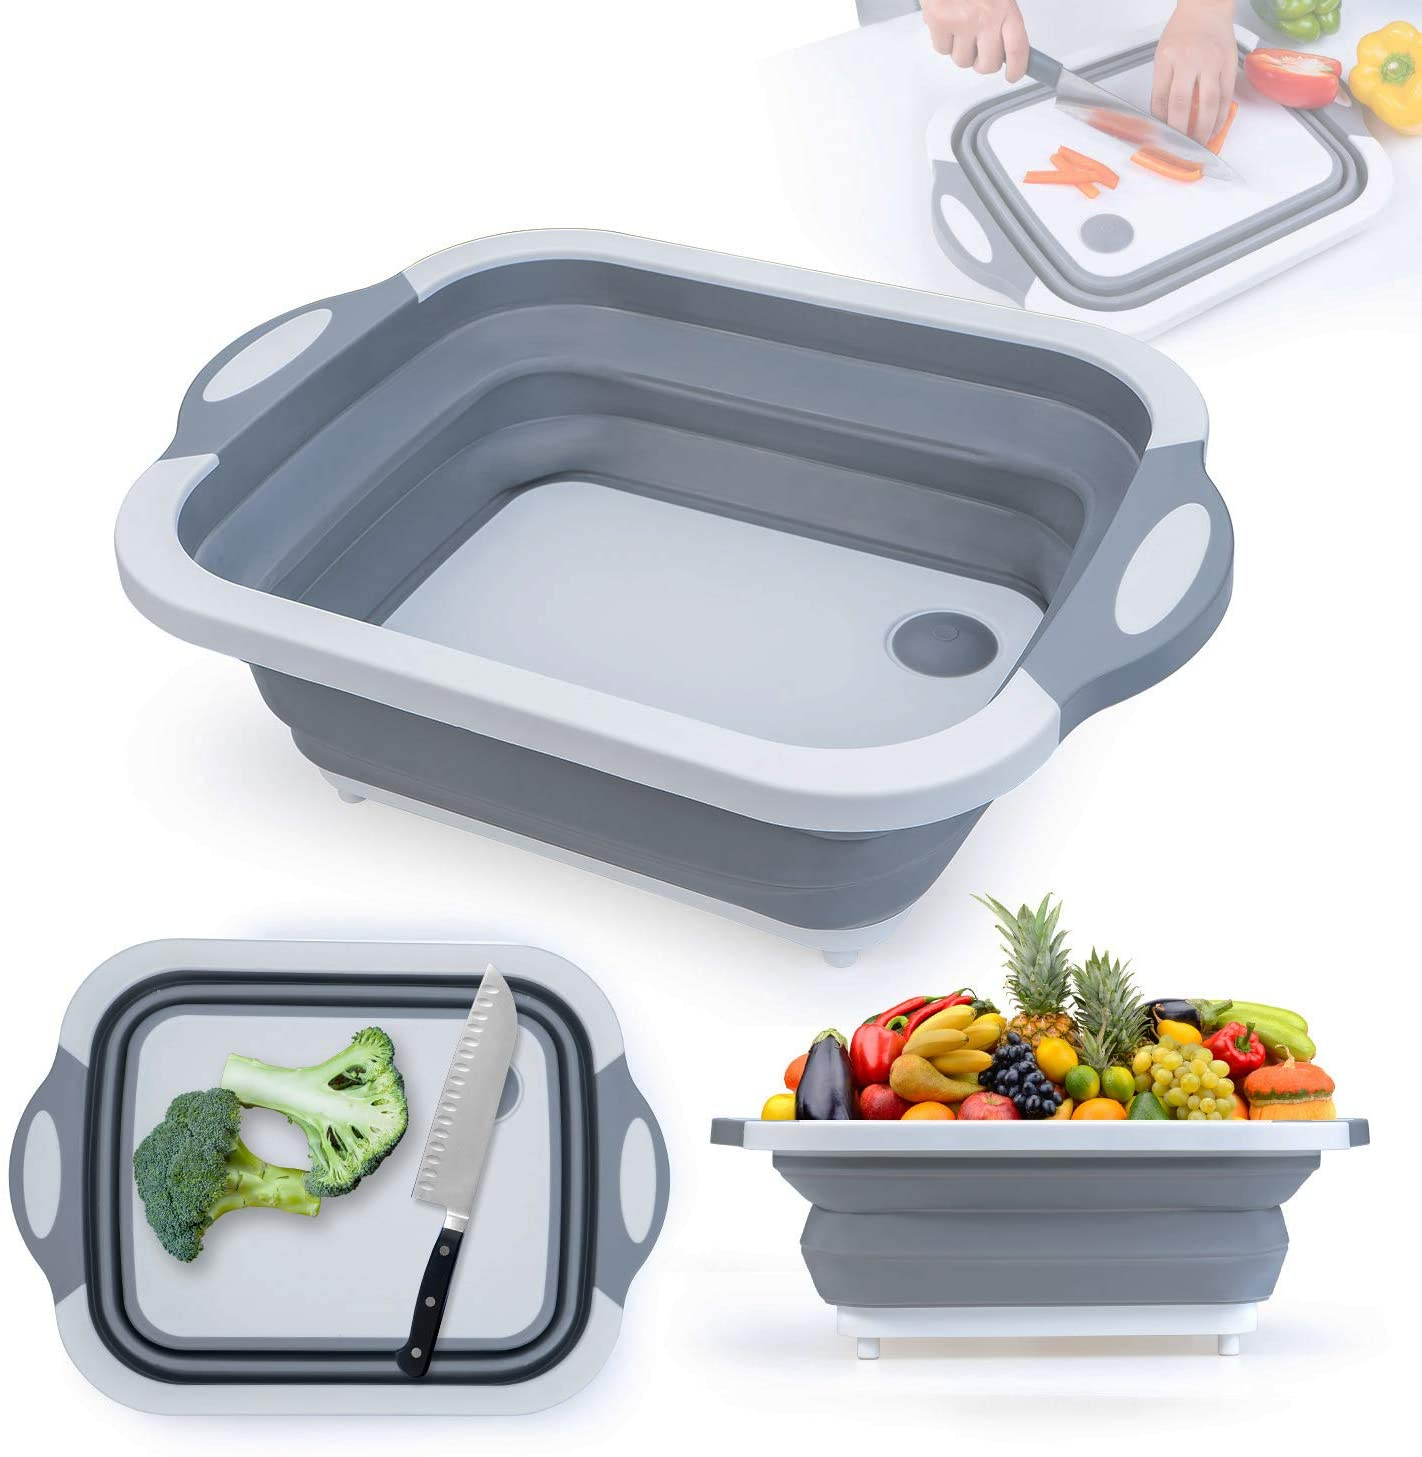 Portable Cleaning Collapsible Dish Washing Bucket Chopping Board Foldable Basin Fruit And Vegetable Drainer Basket, Dish Washing Sink